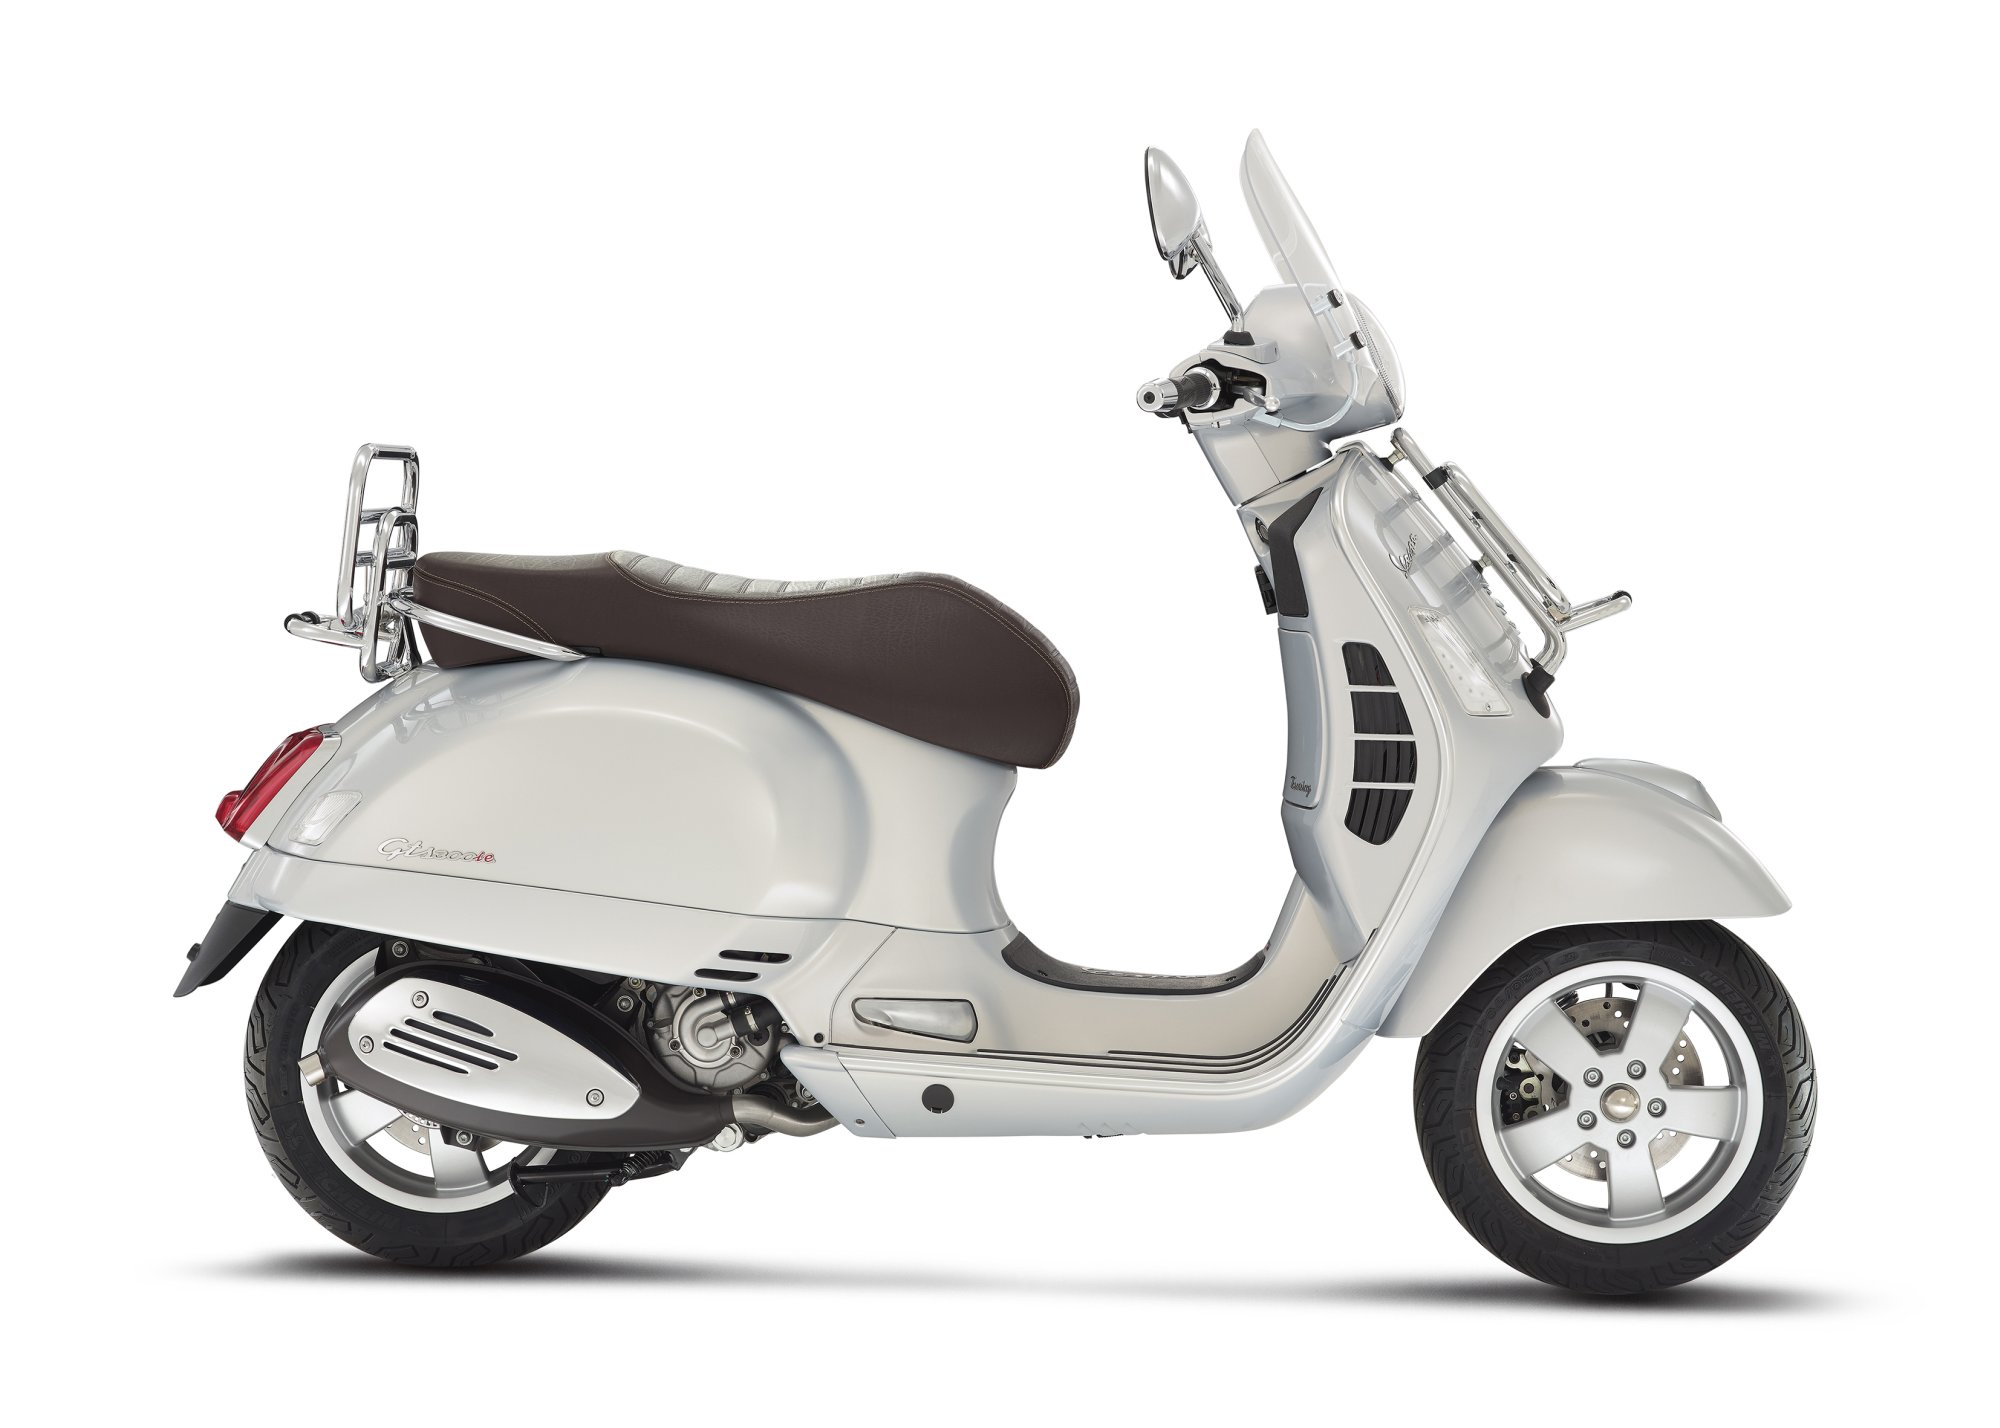 vespa gts 300 i e touring bilder und technische daten. Black Bedroom Furniture Sets. Home Design Ideas